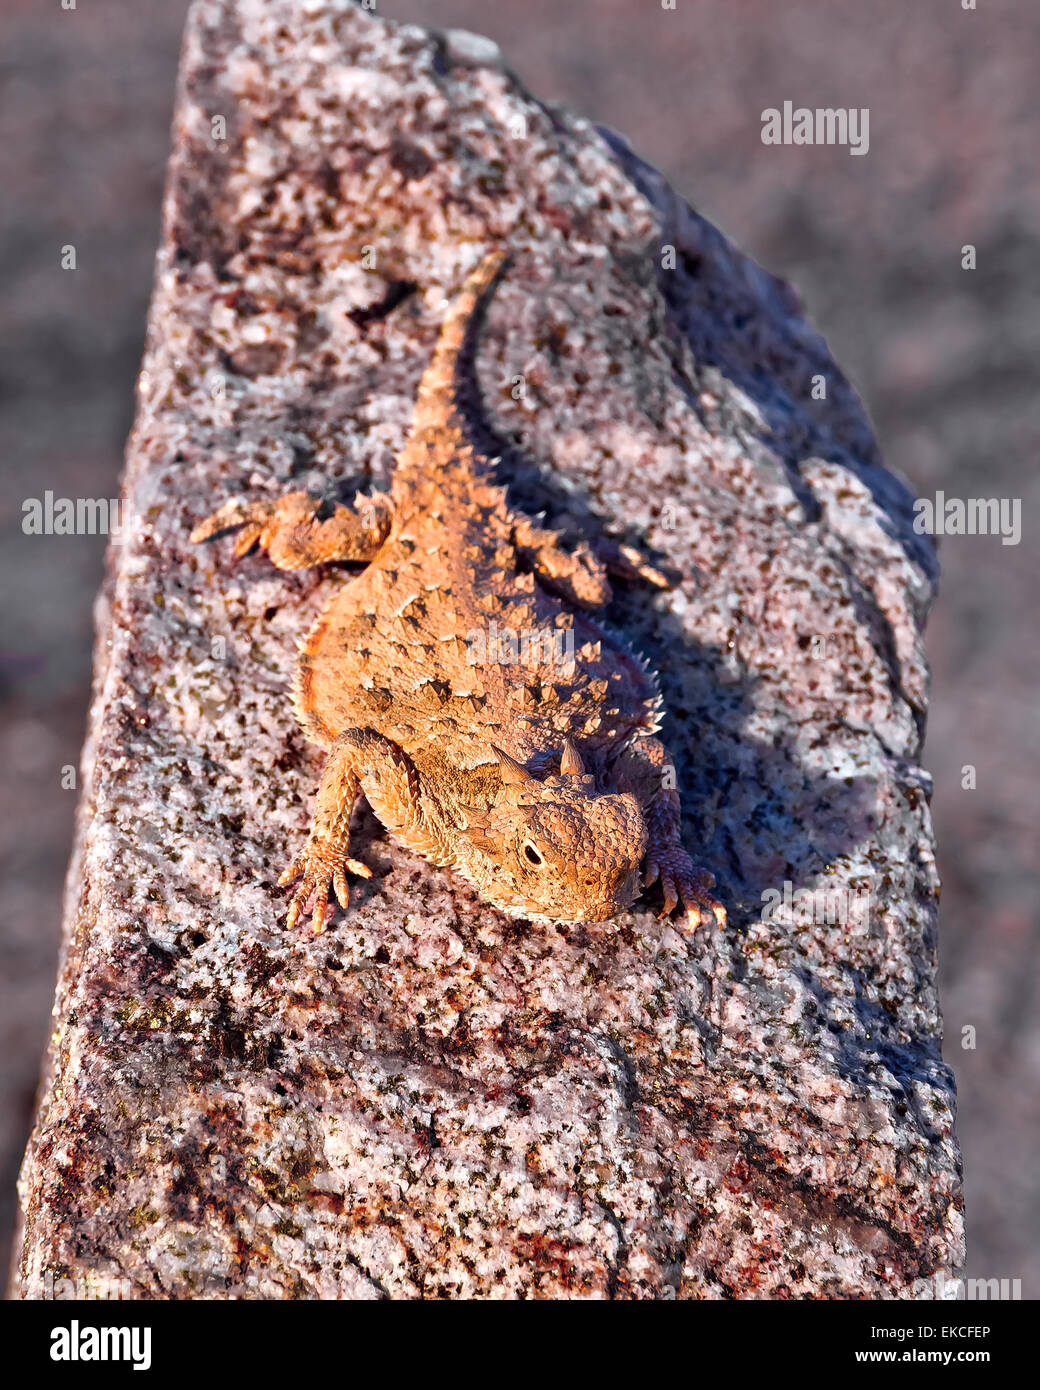 Horned Lizards Basking in sun, Arizona, USA - Stock Image